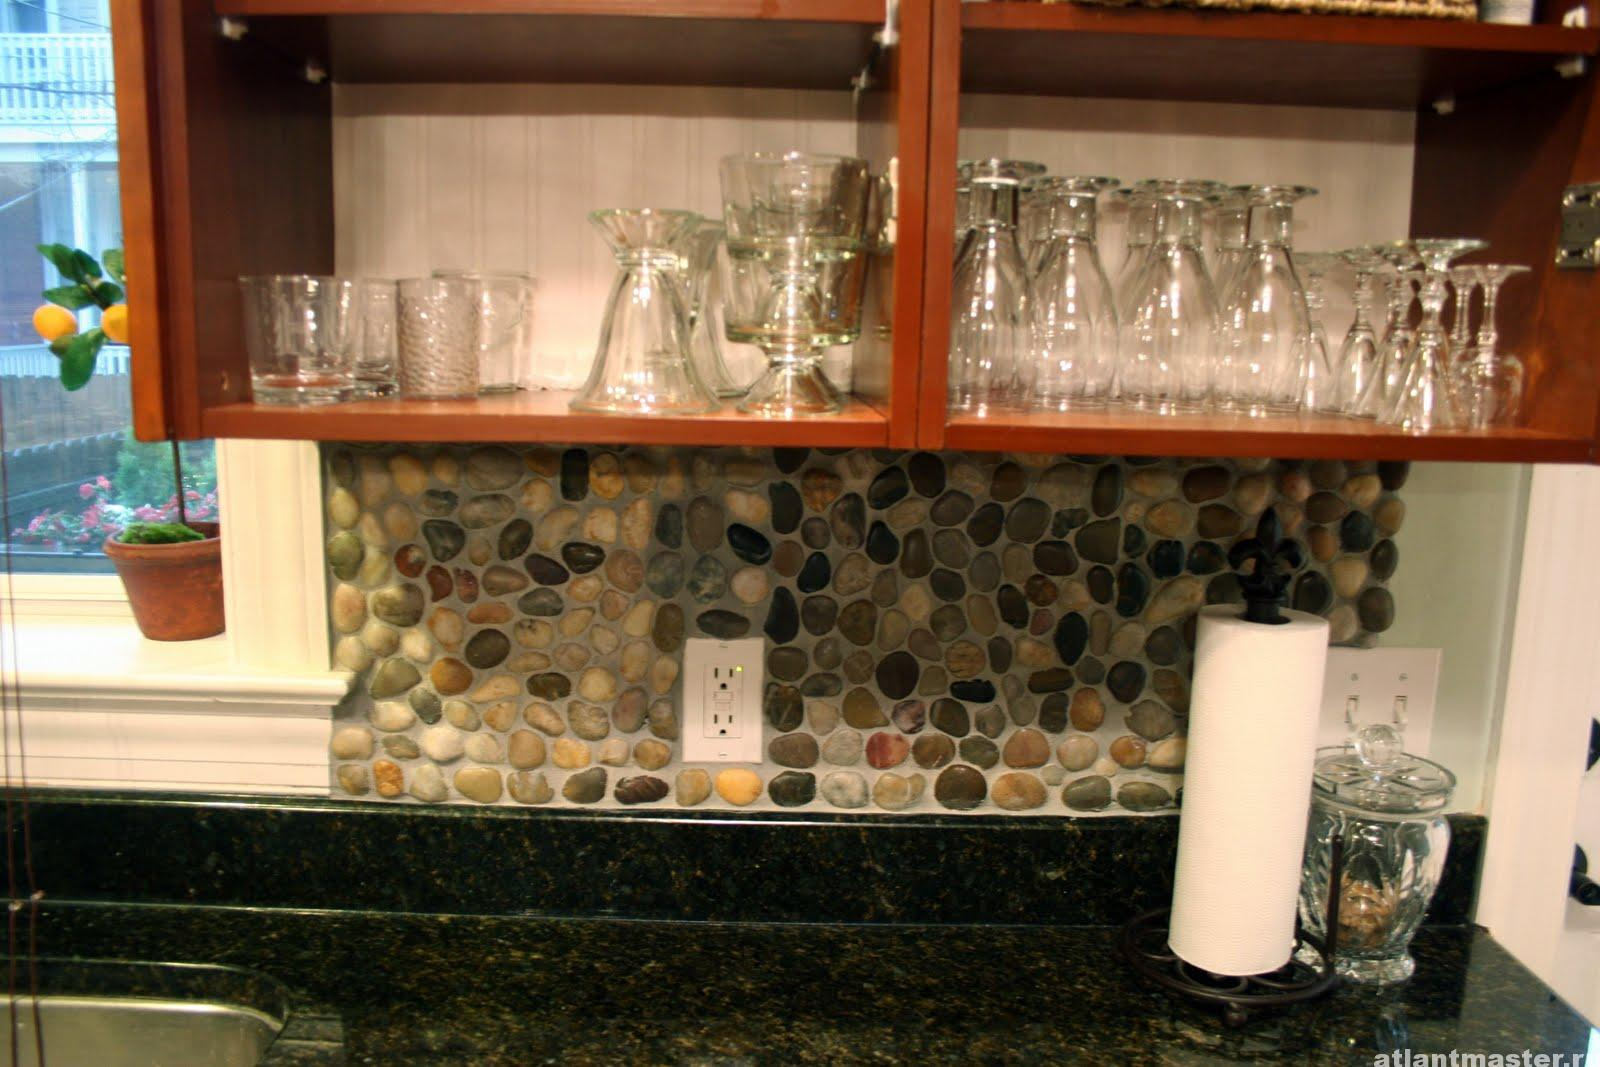 layered-stone-backsplashes-for-kitchen-inspirations